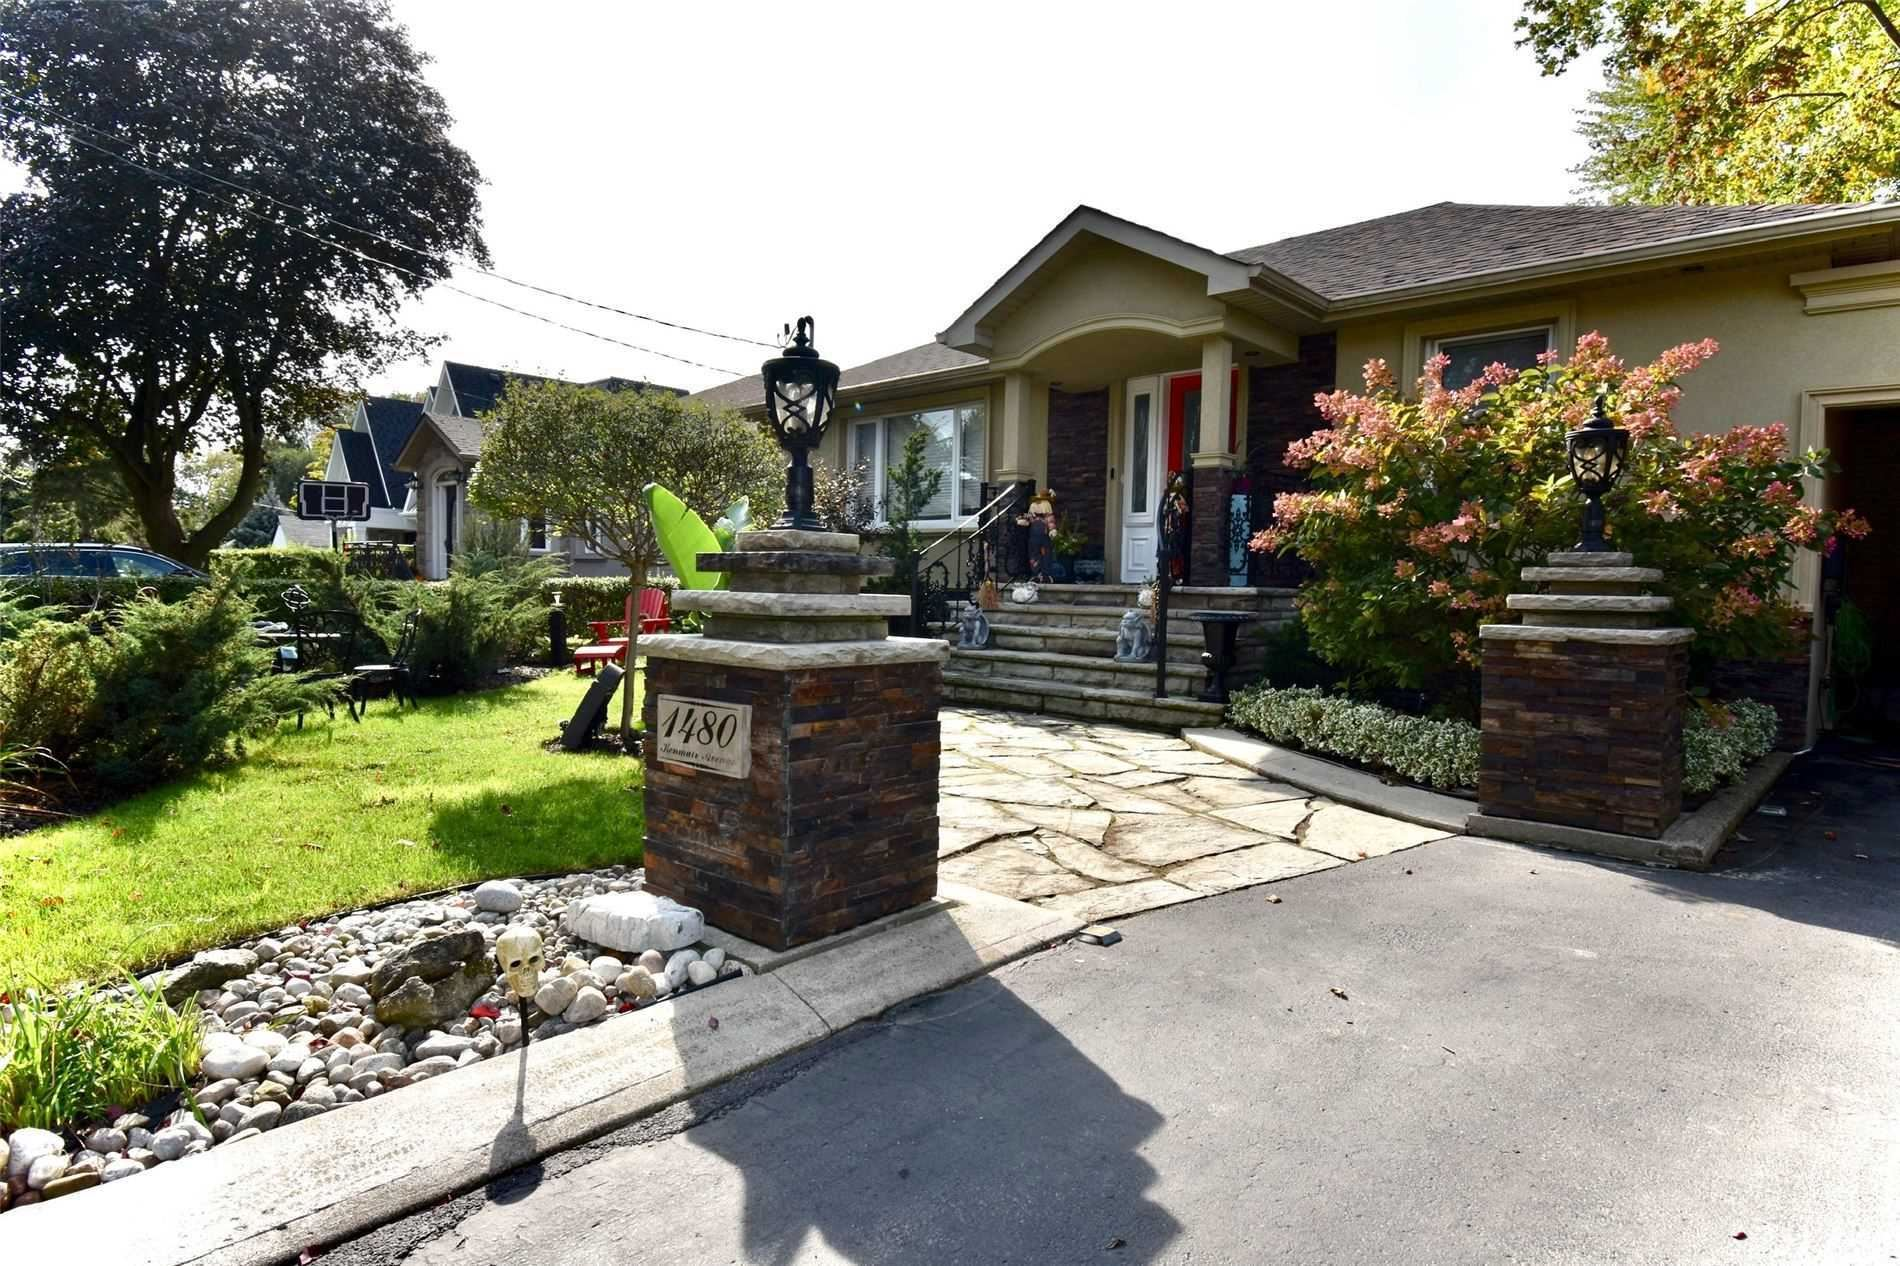 1480 Kenmuir Ave, Mississauga, ON L5G4B5 - MLS#: W5402894